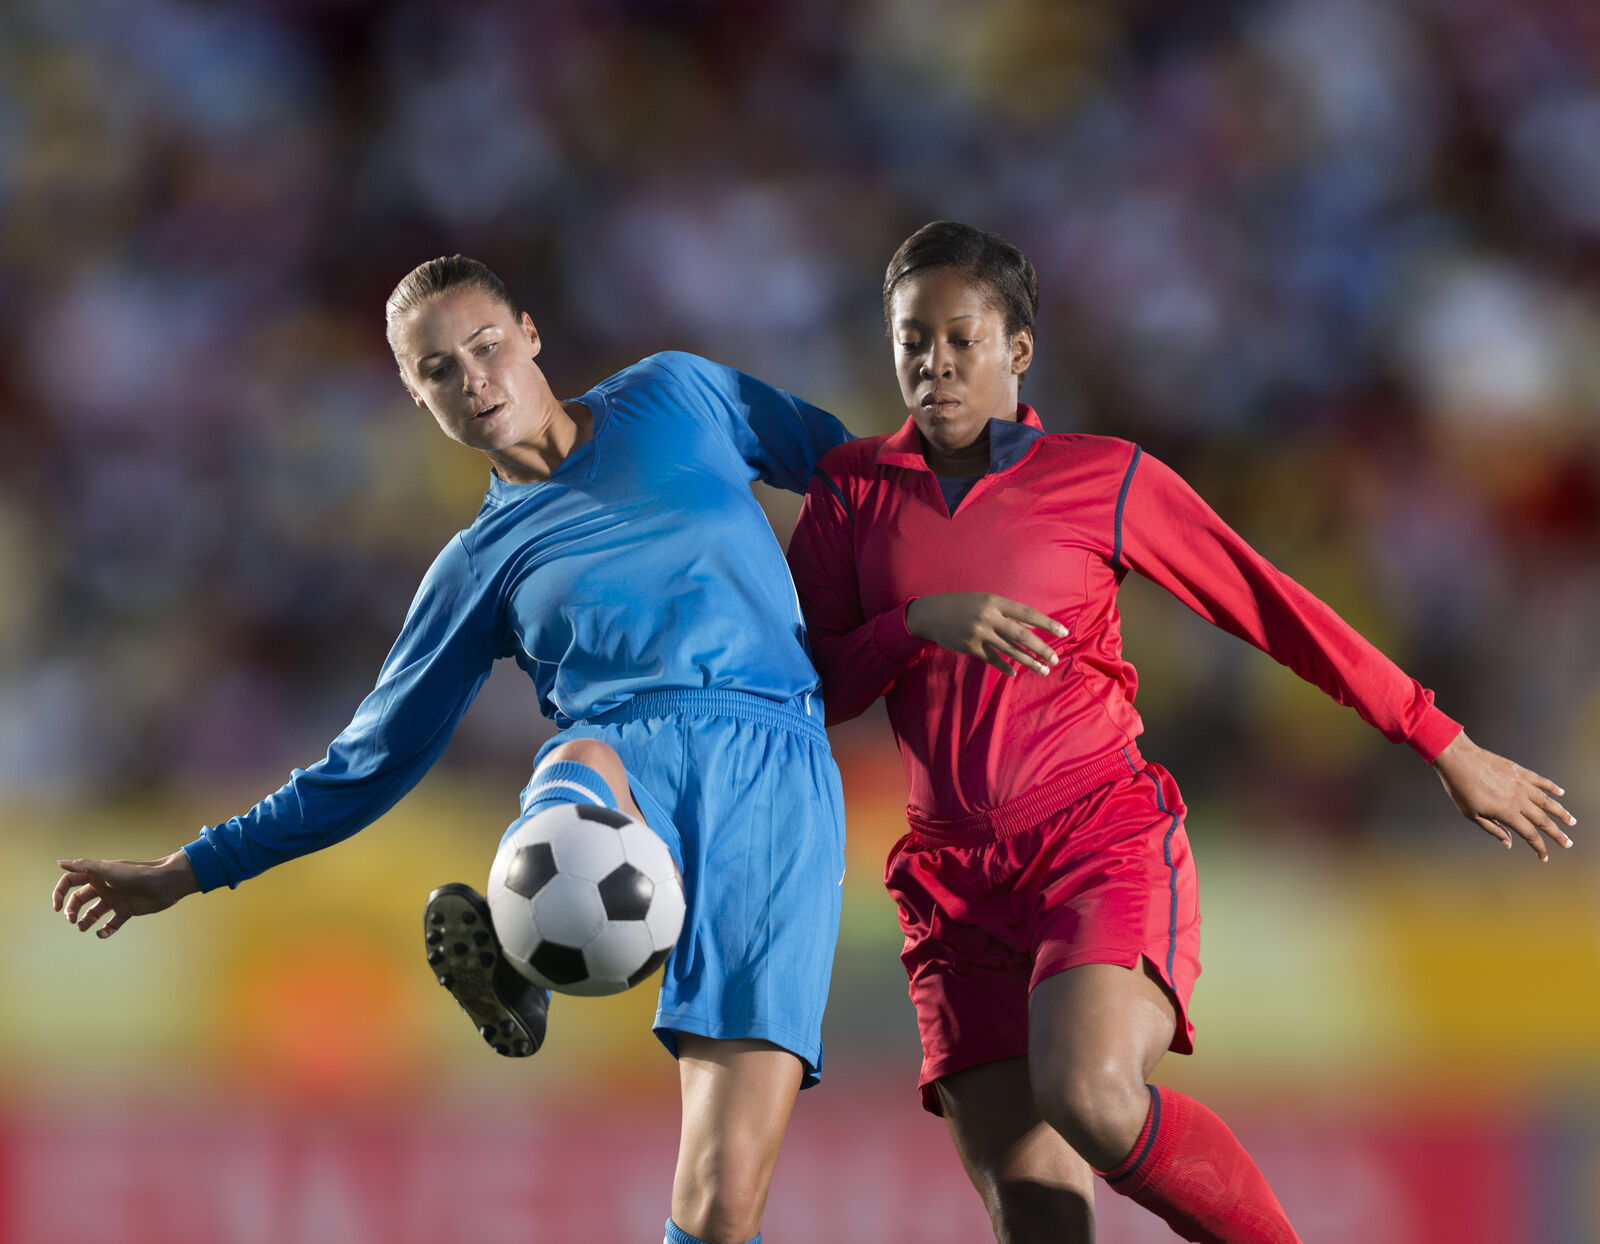 Belgium Womens National Soccer Team at U.S. Womens National Soccer Team